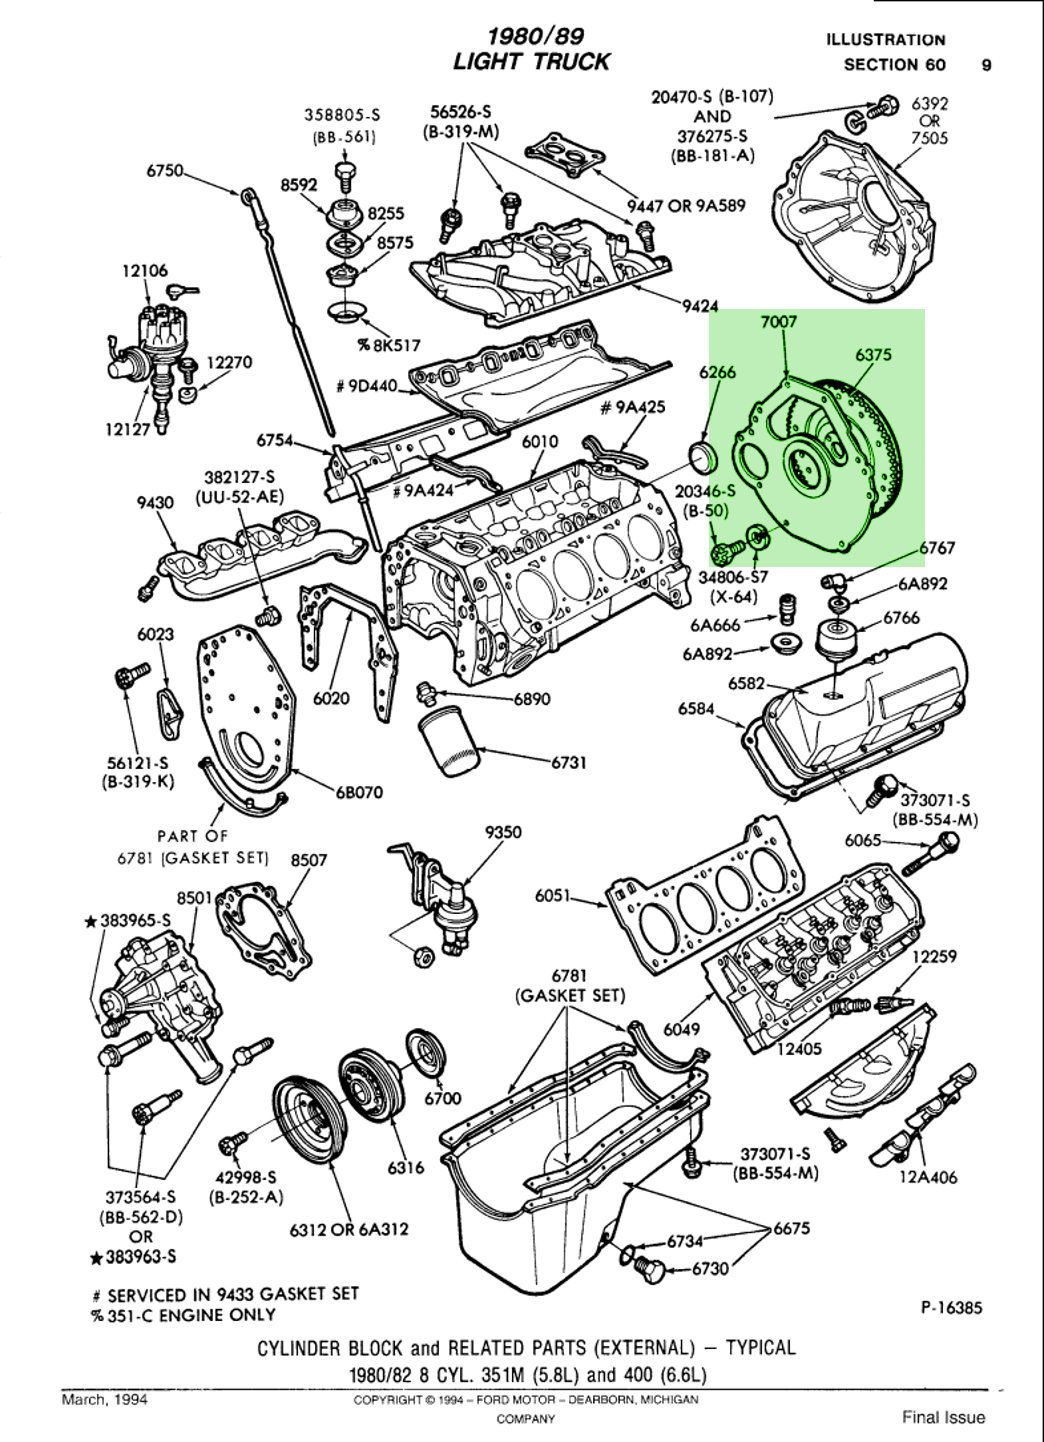 2009 Kia Borrego Wiring Diagram. Kia. Auto Wiring Diagram